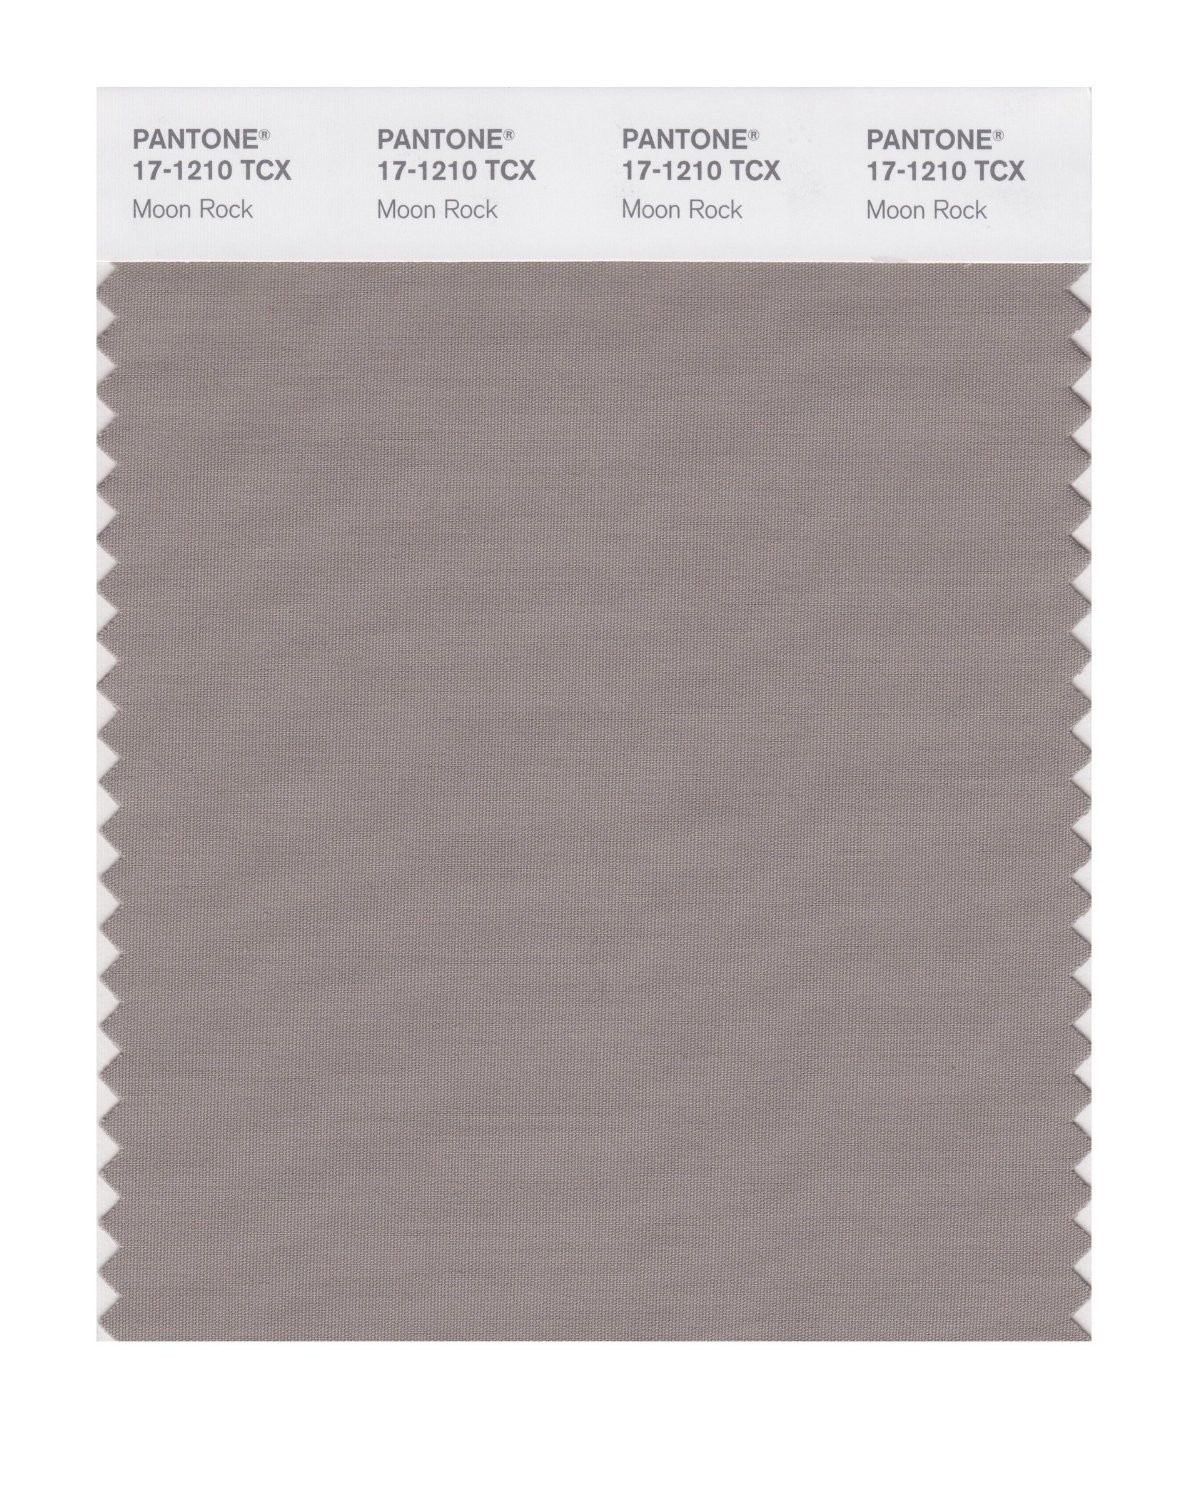 Pantone 17-1210 TCX Swatch Card Moon Rock